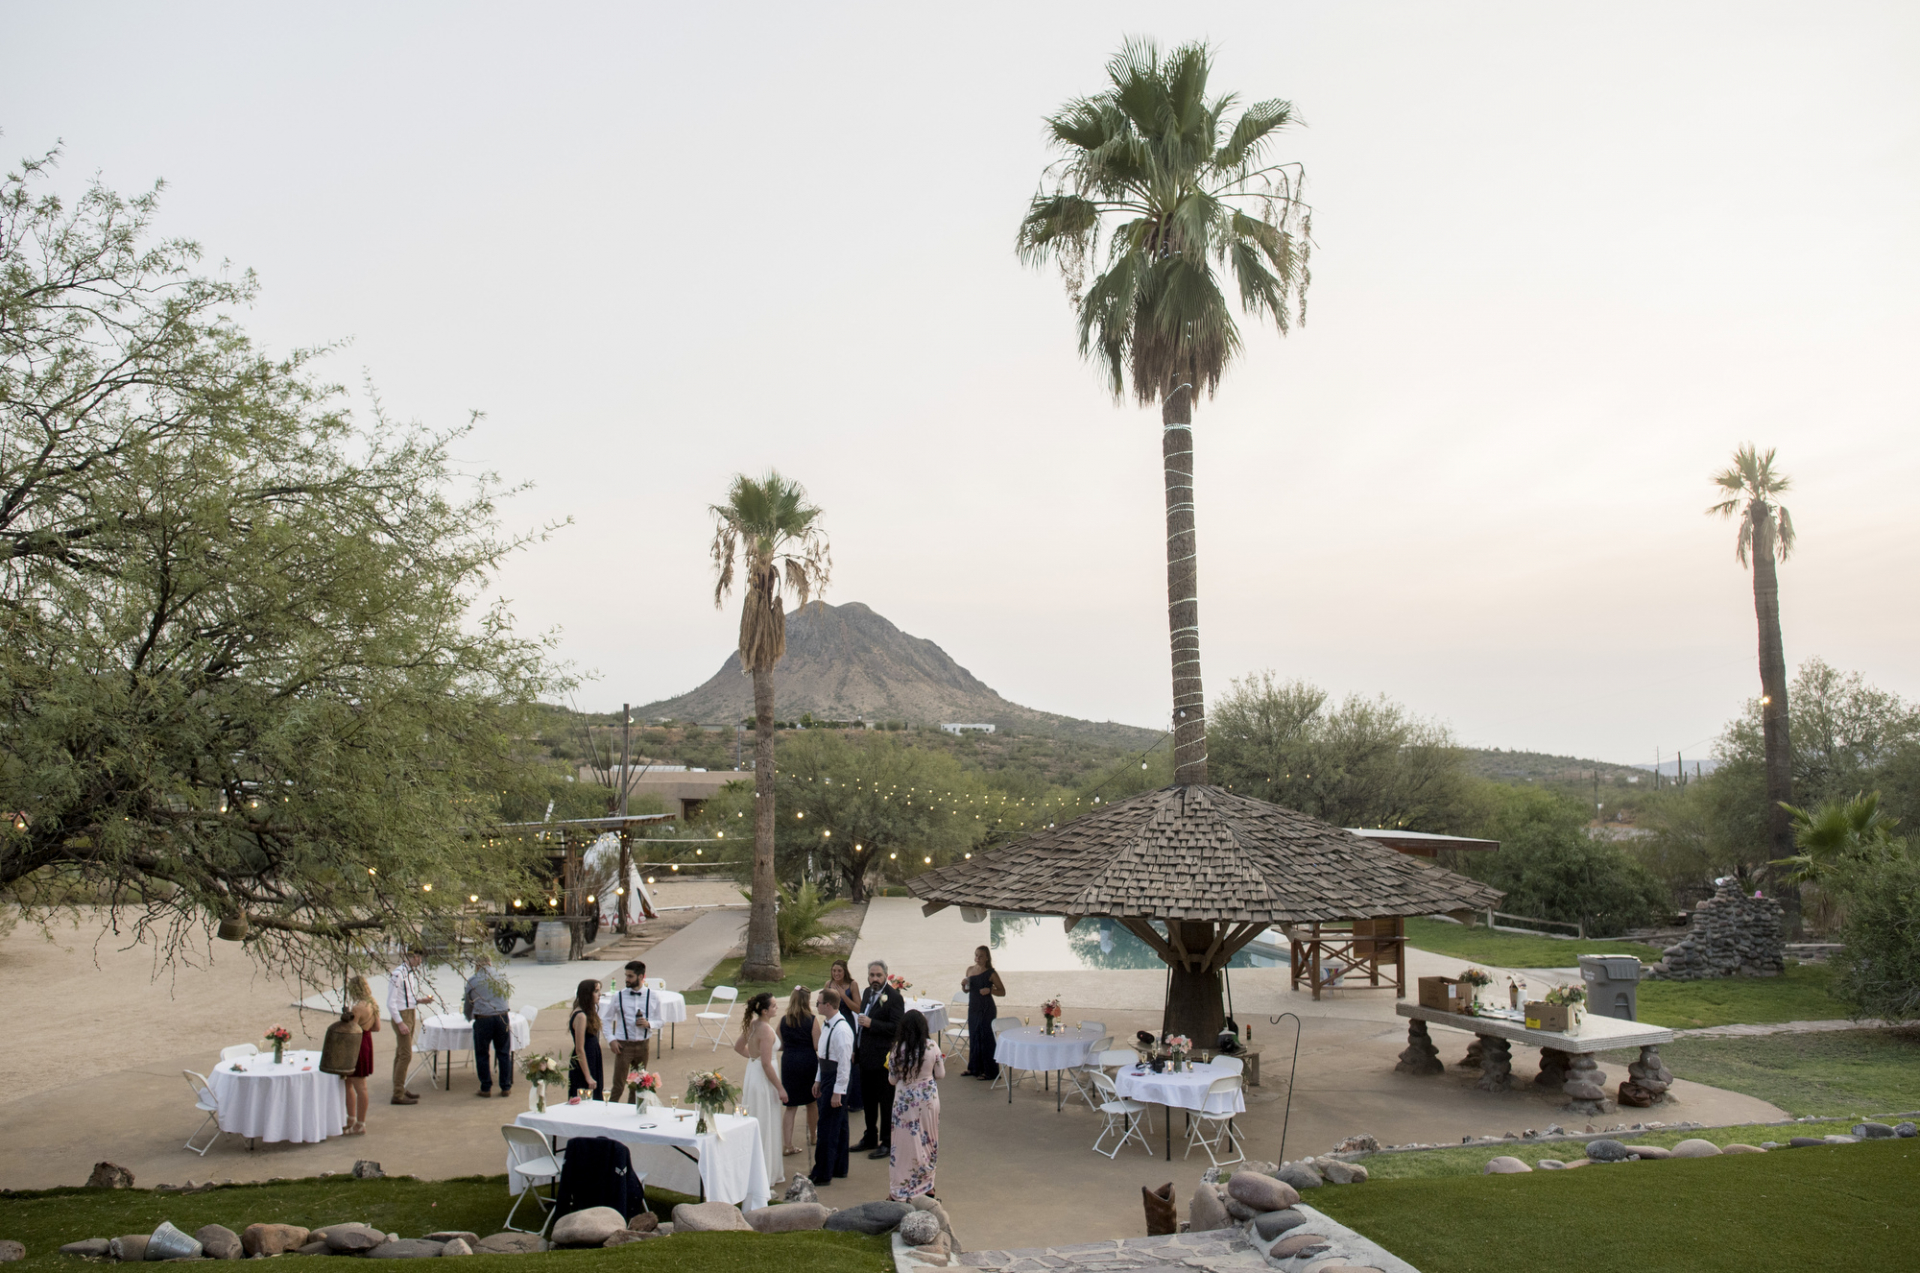 AZ Rental Home Wedding Photos | The guests mingle with the happy couple